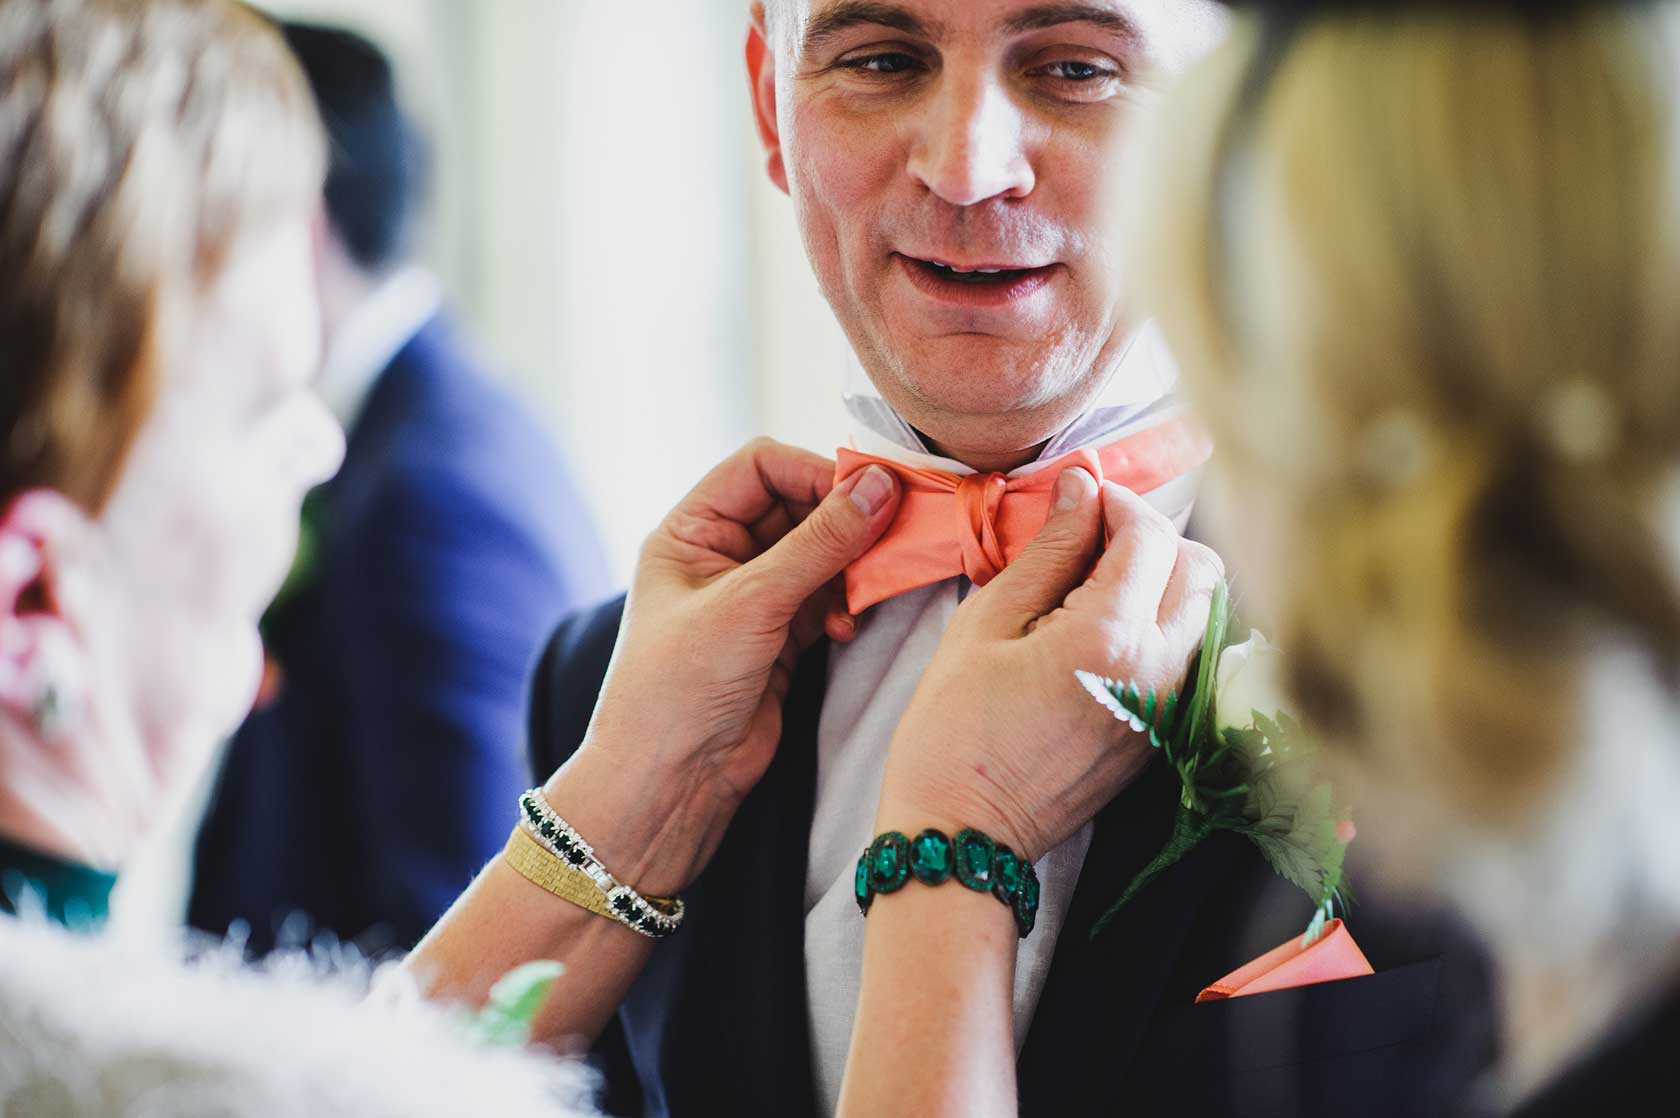 Reportage Wedding Photography at Shottle Hall